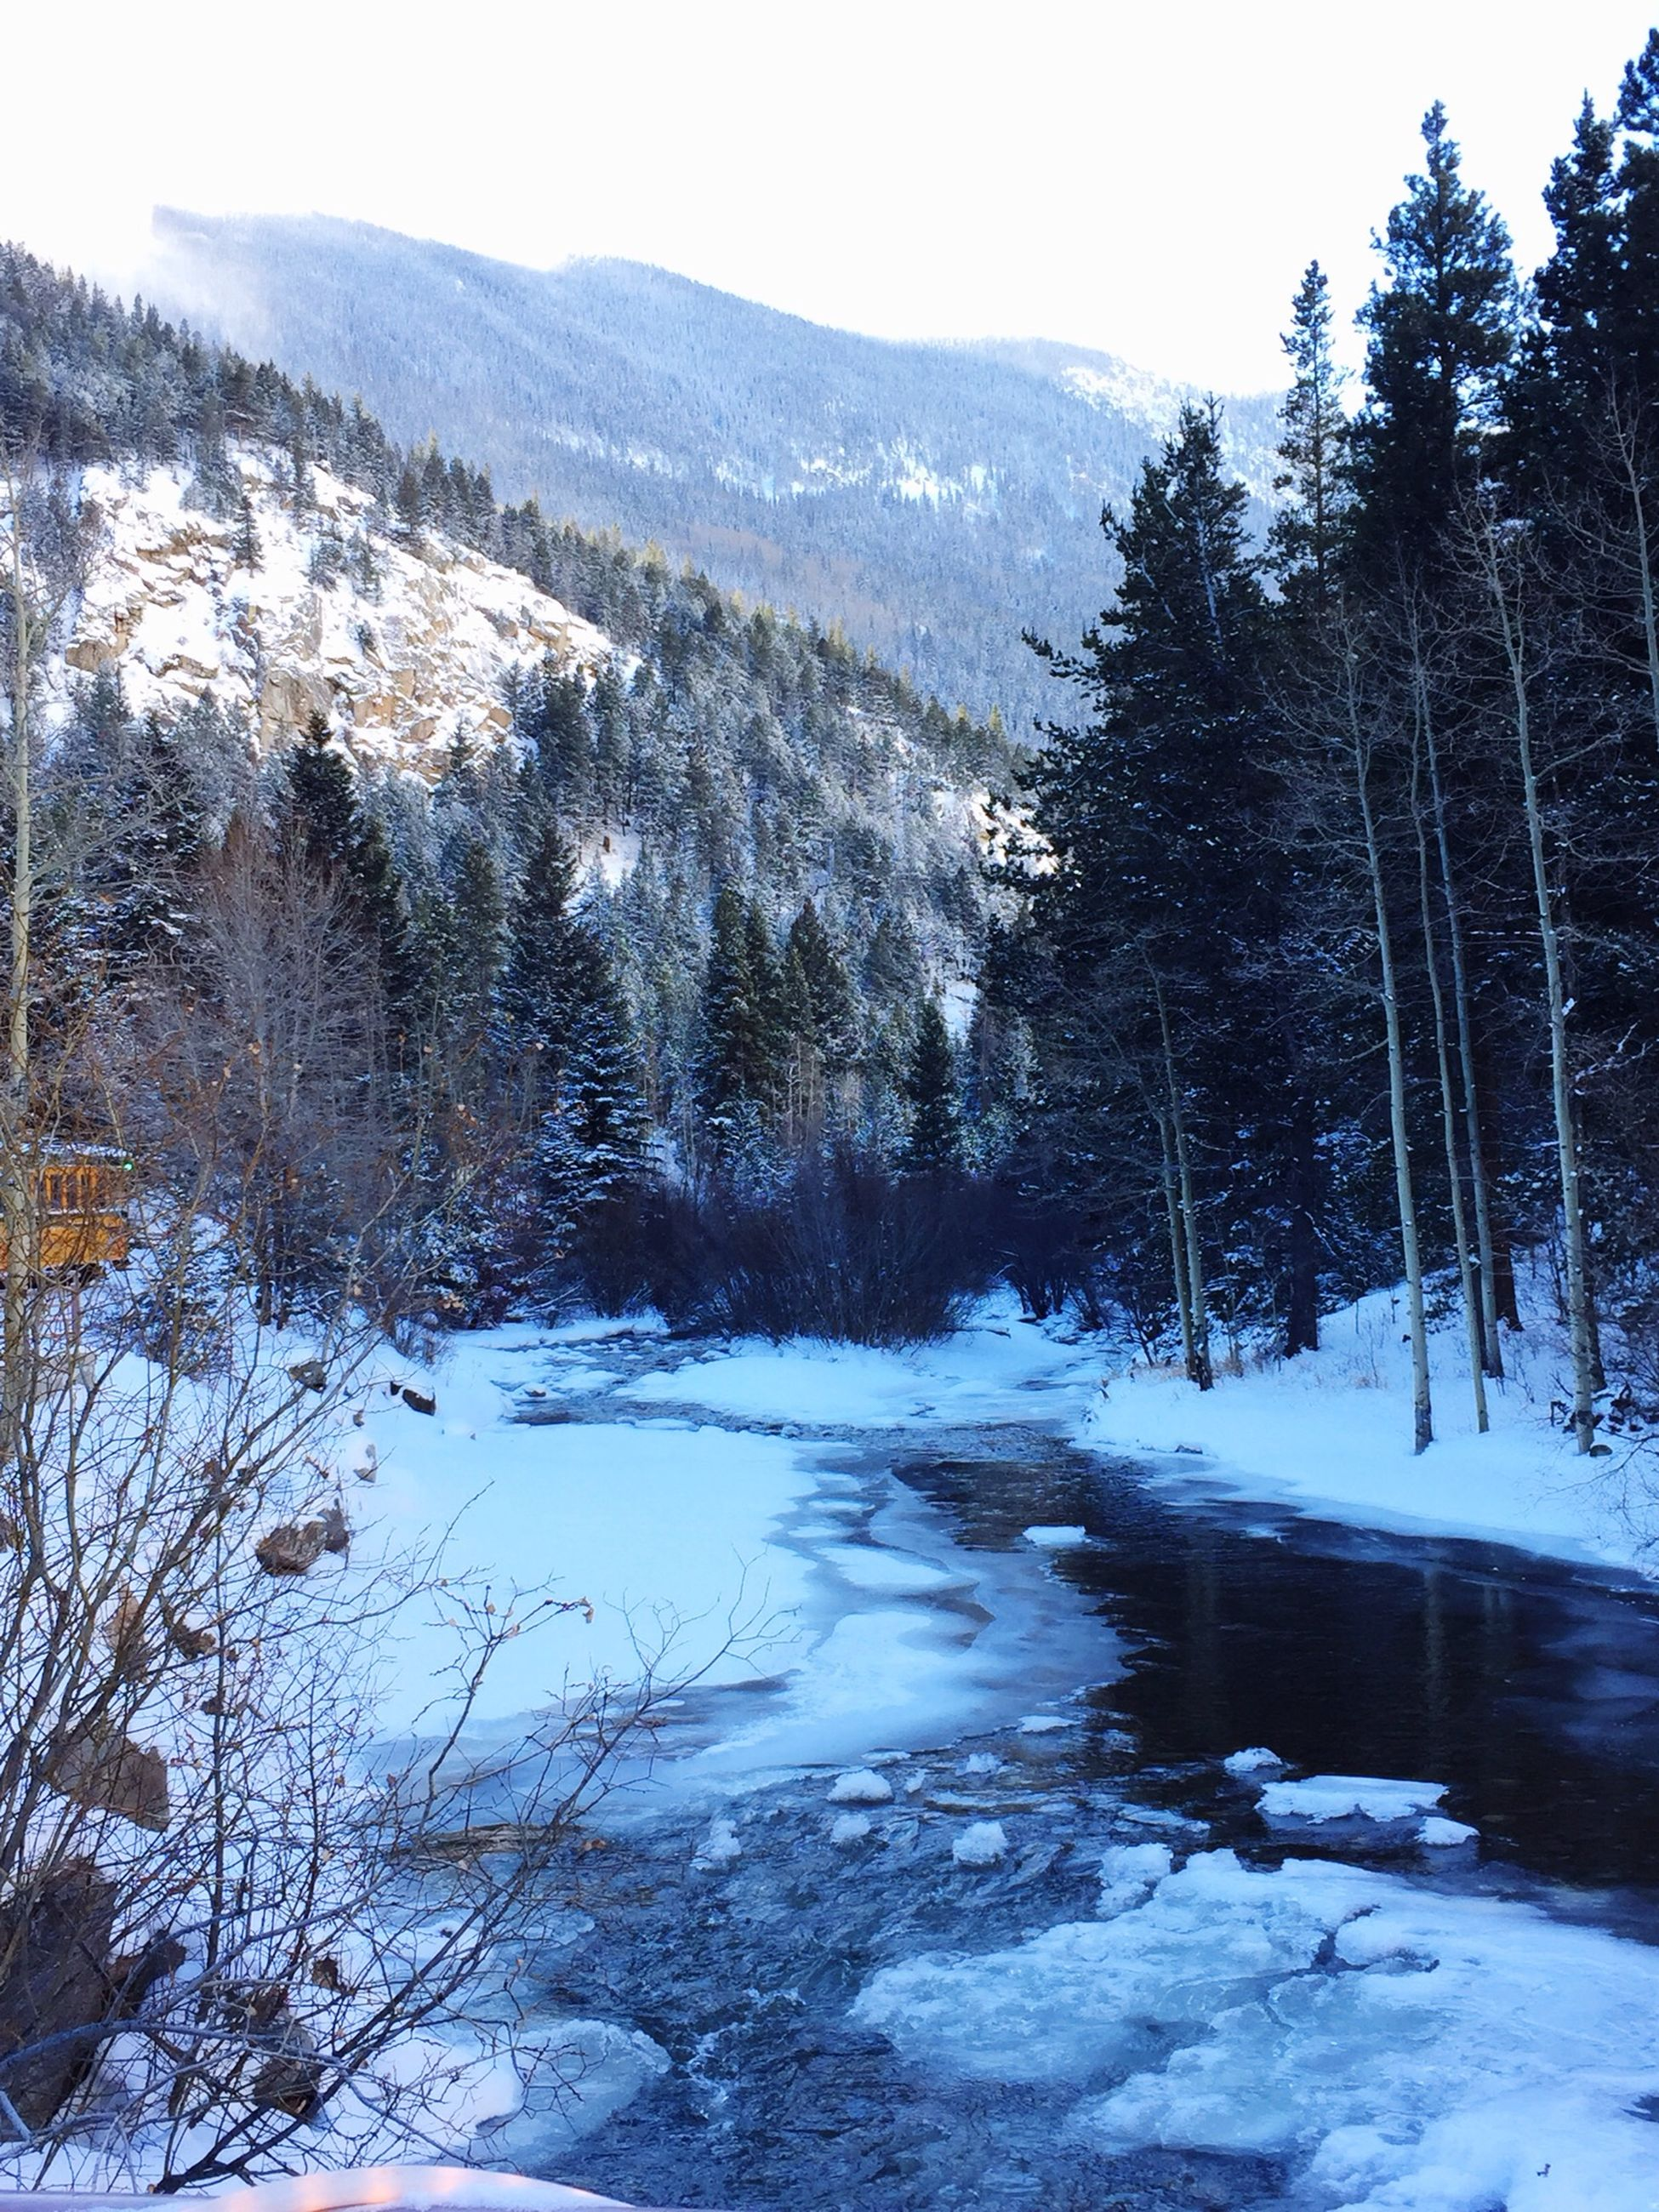 snow, winter, cold temperature, tranquil scene, tree, tranquility, mountain, season, scenics, beauty in nature, water, nature, weather, frozen, landscape, river, non-urban scene, lake, covering, clear sky